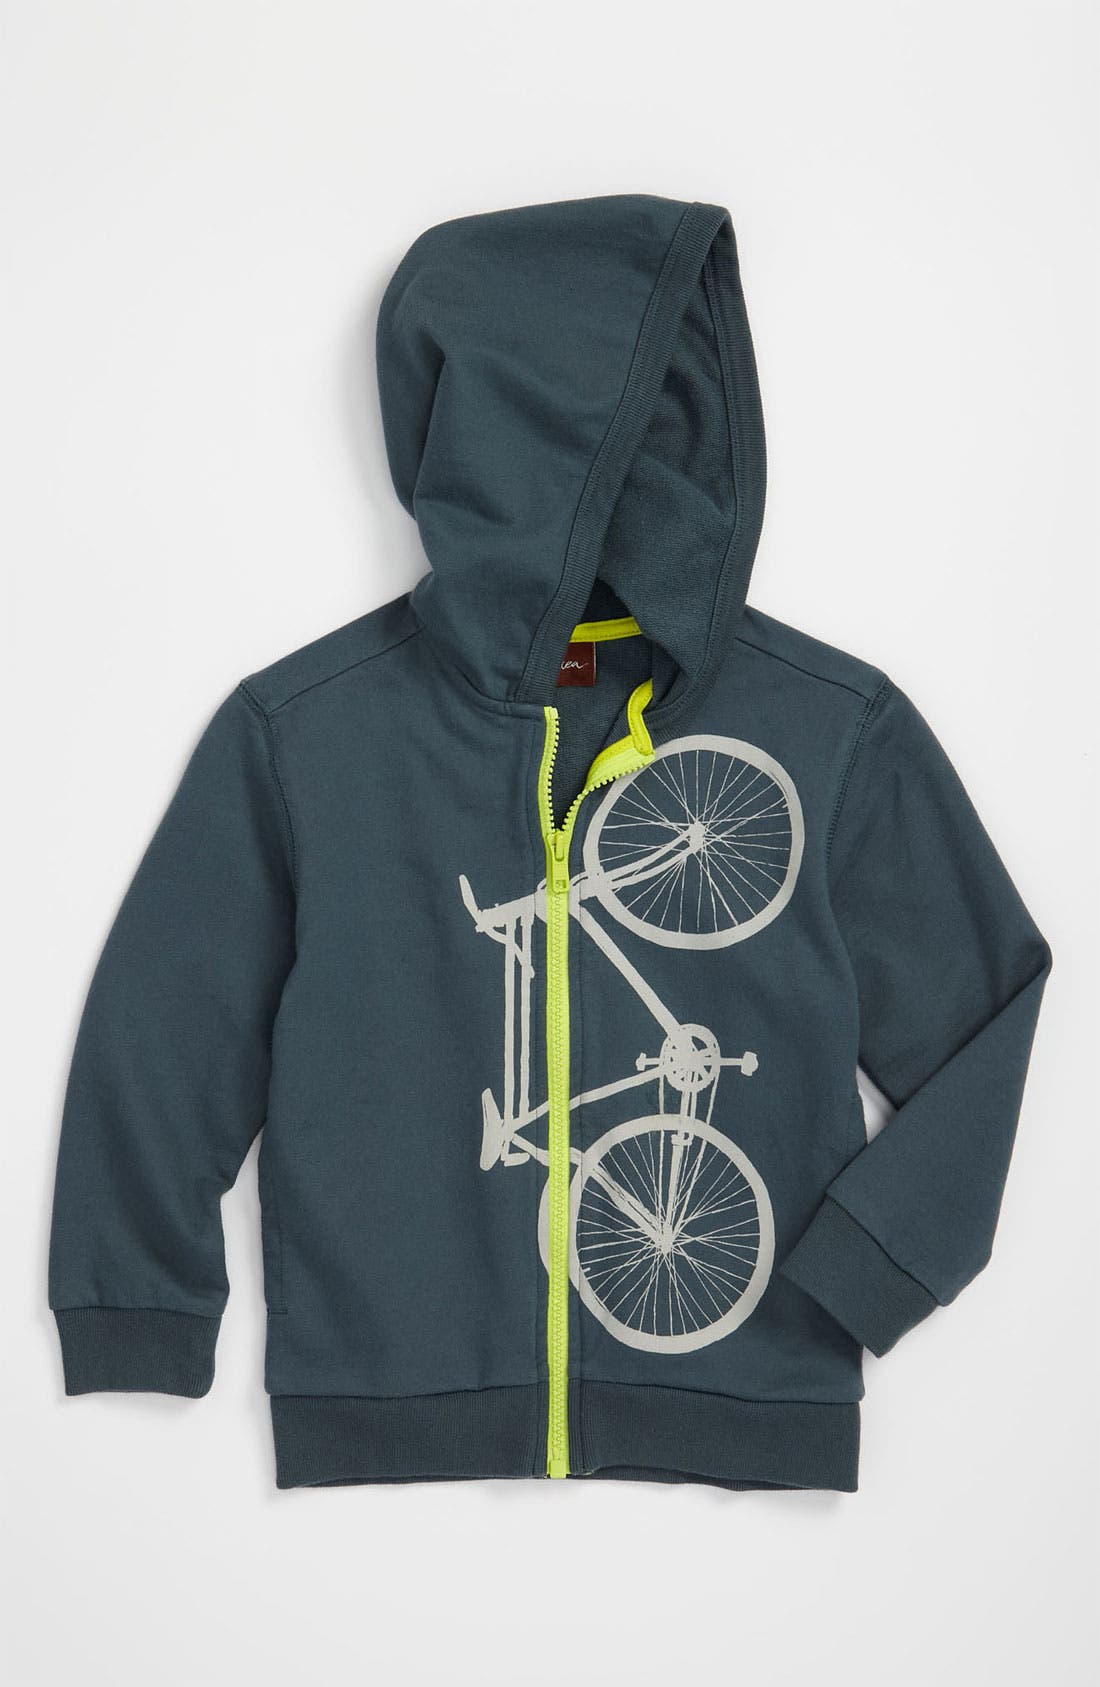 Alternate Image 1 Selected - Tea Collection 'Cykel' Hoodie (Infant)